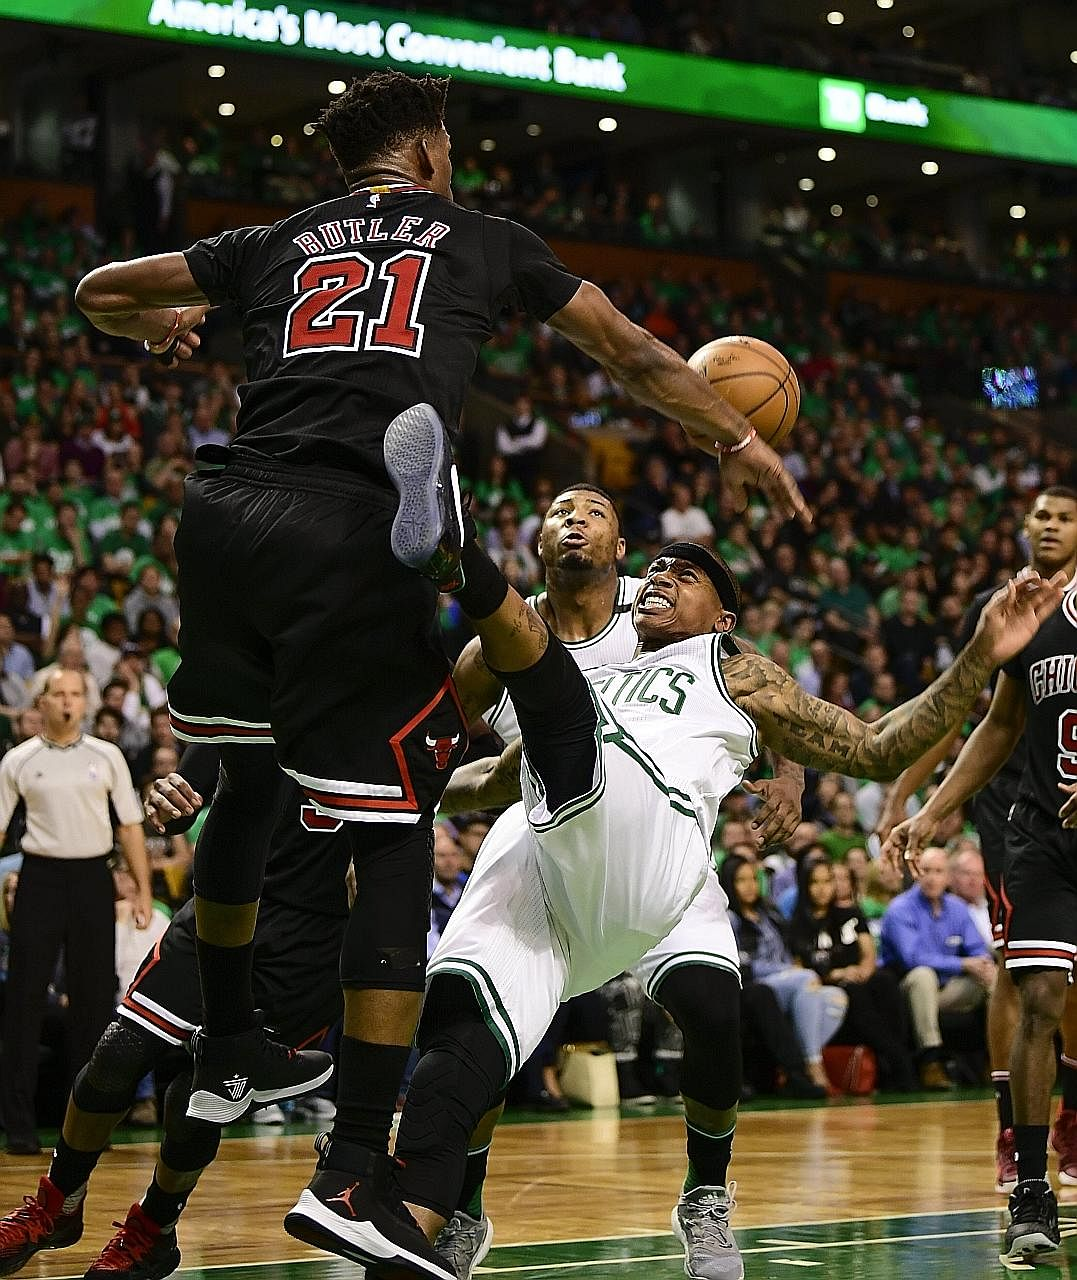 Bulls forward Jimmy Butler blocks Celtics guard Isaiah Thomas during Chicago's 111-97 victory over top seeds Boston in Game Two of their first-round Eastern Conference series. Butler, who had 22 points, eight rebounds and four steals, said the victor